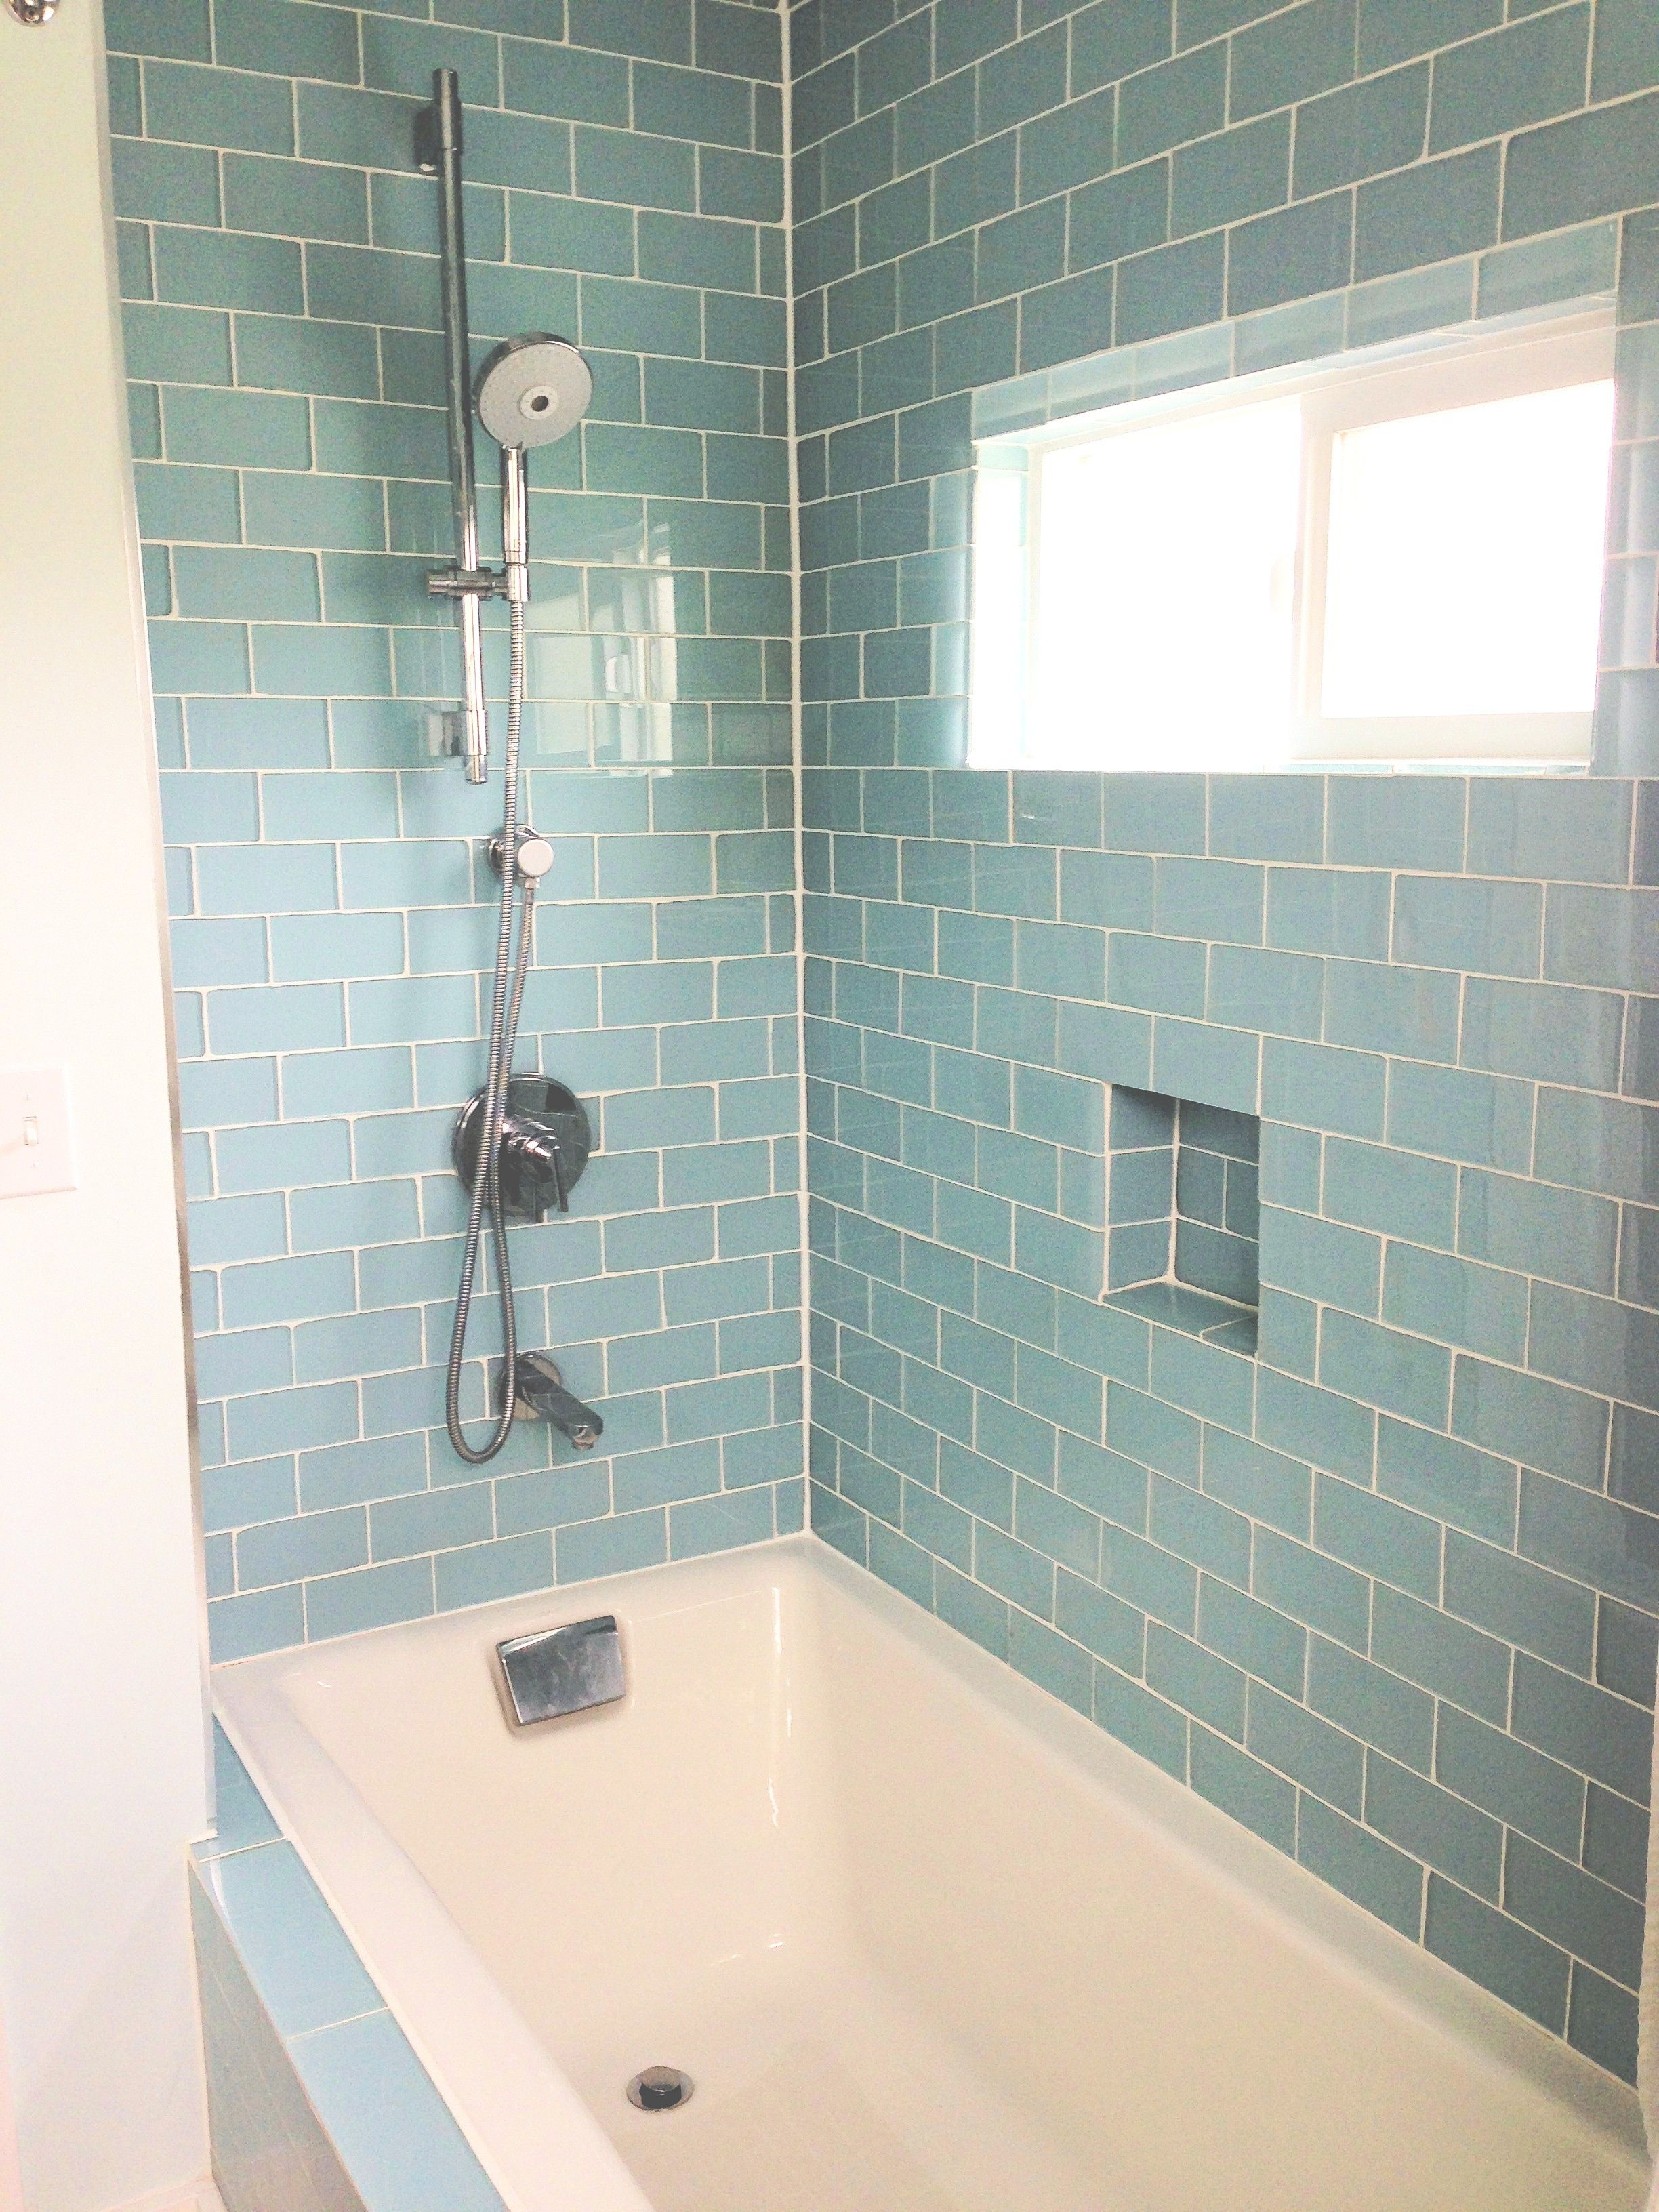 4x12 Subway Tile Shower Luxury 27 Great Small Bathroom Glass Tiles Ideas Glass Subway Tile Bathroom Glass Tile Bathroom Glass Tile Shower